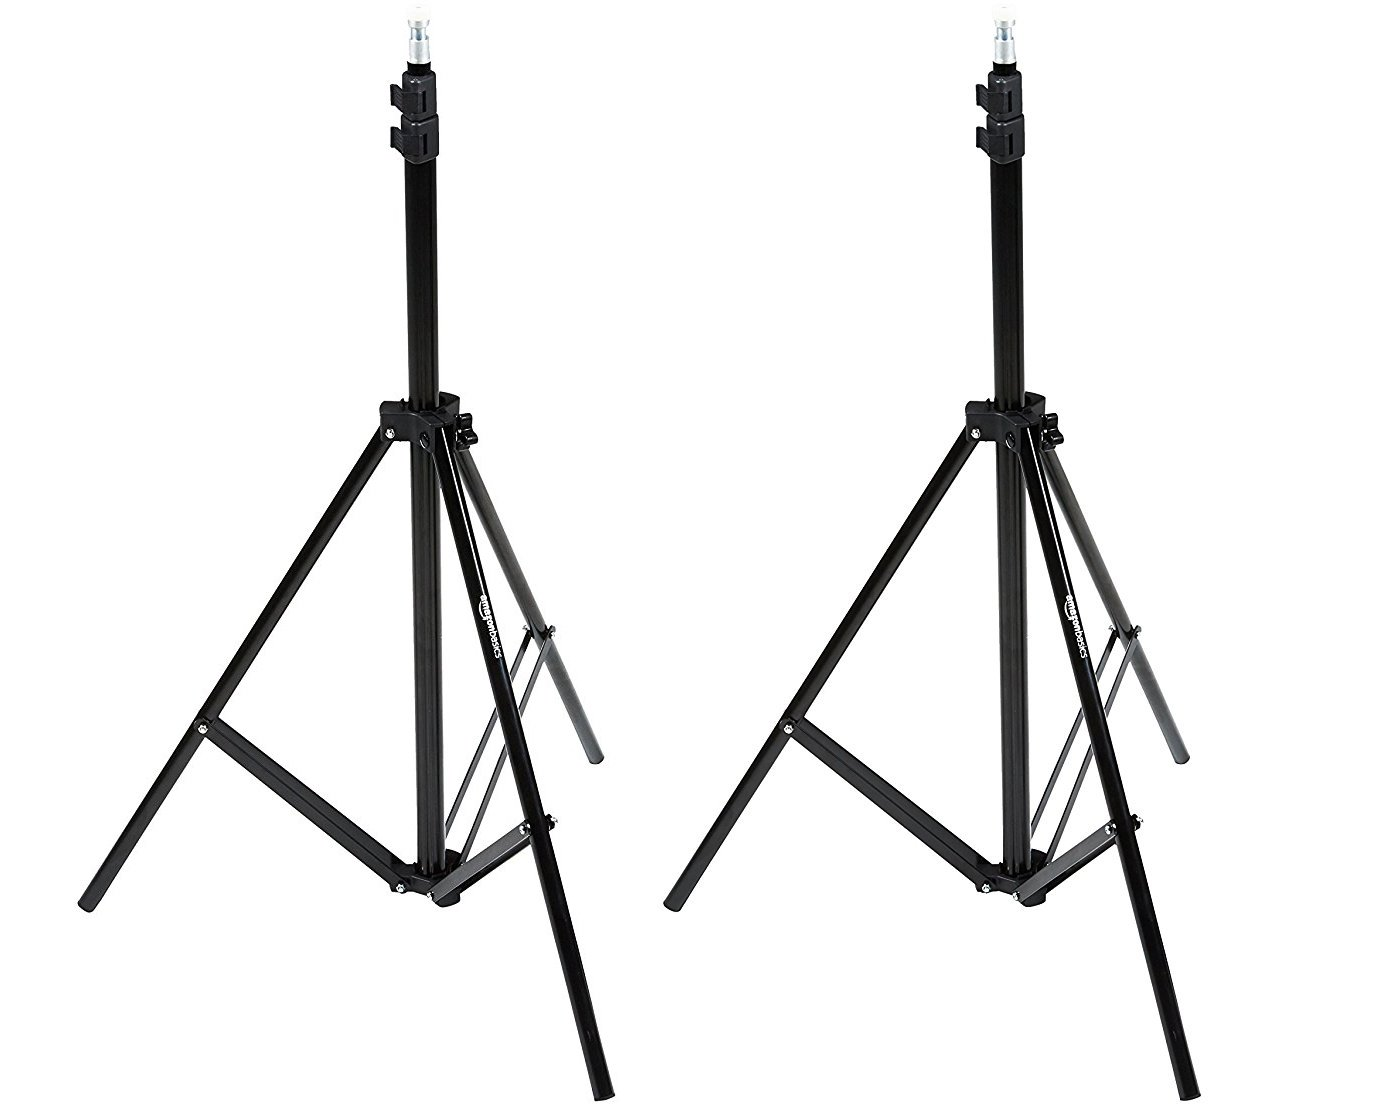 AmazonBasics Aluminum Light Photography Tripod Stand with Case - Pack of 2, 2.8 - 6.7 Feet, Black by AmazonBasics